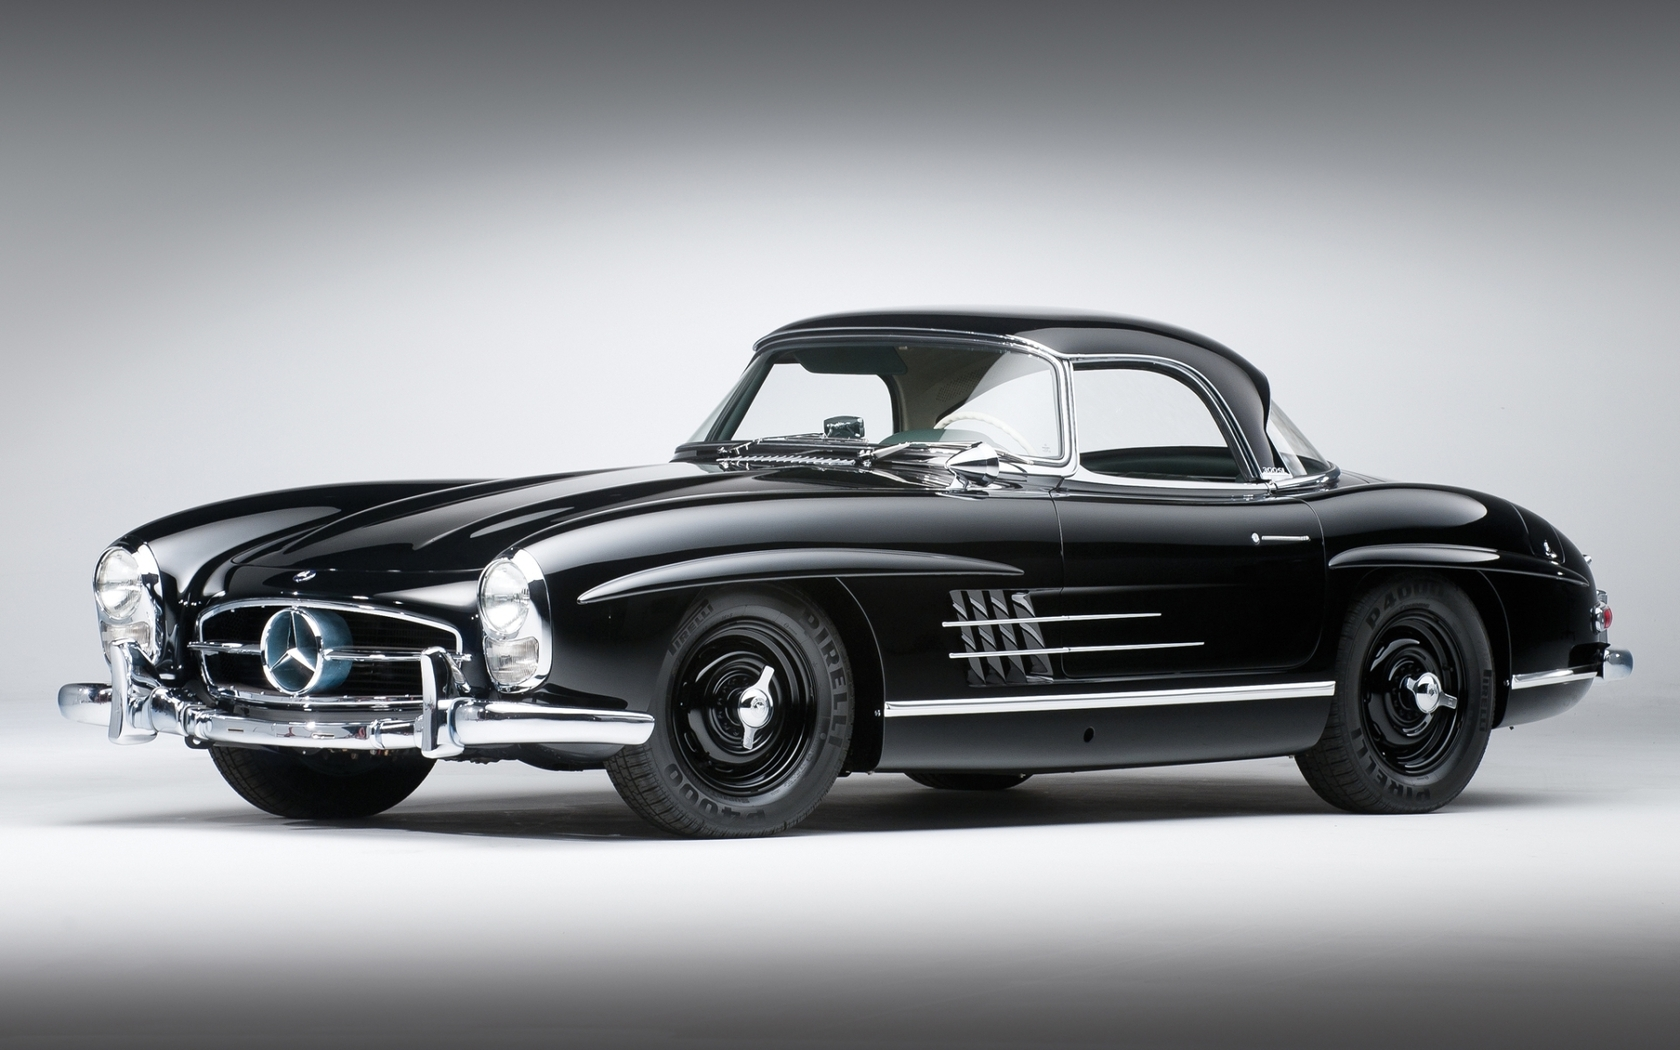 Mercedes Benz 17 Free Download Image Of